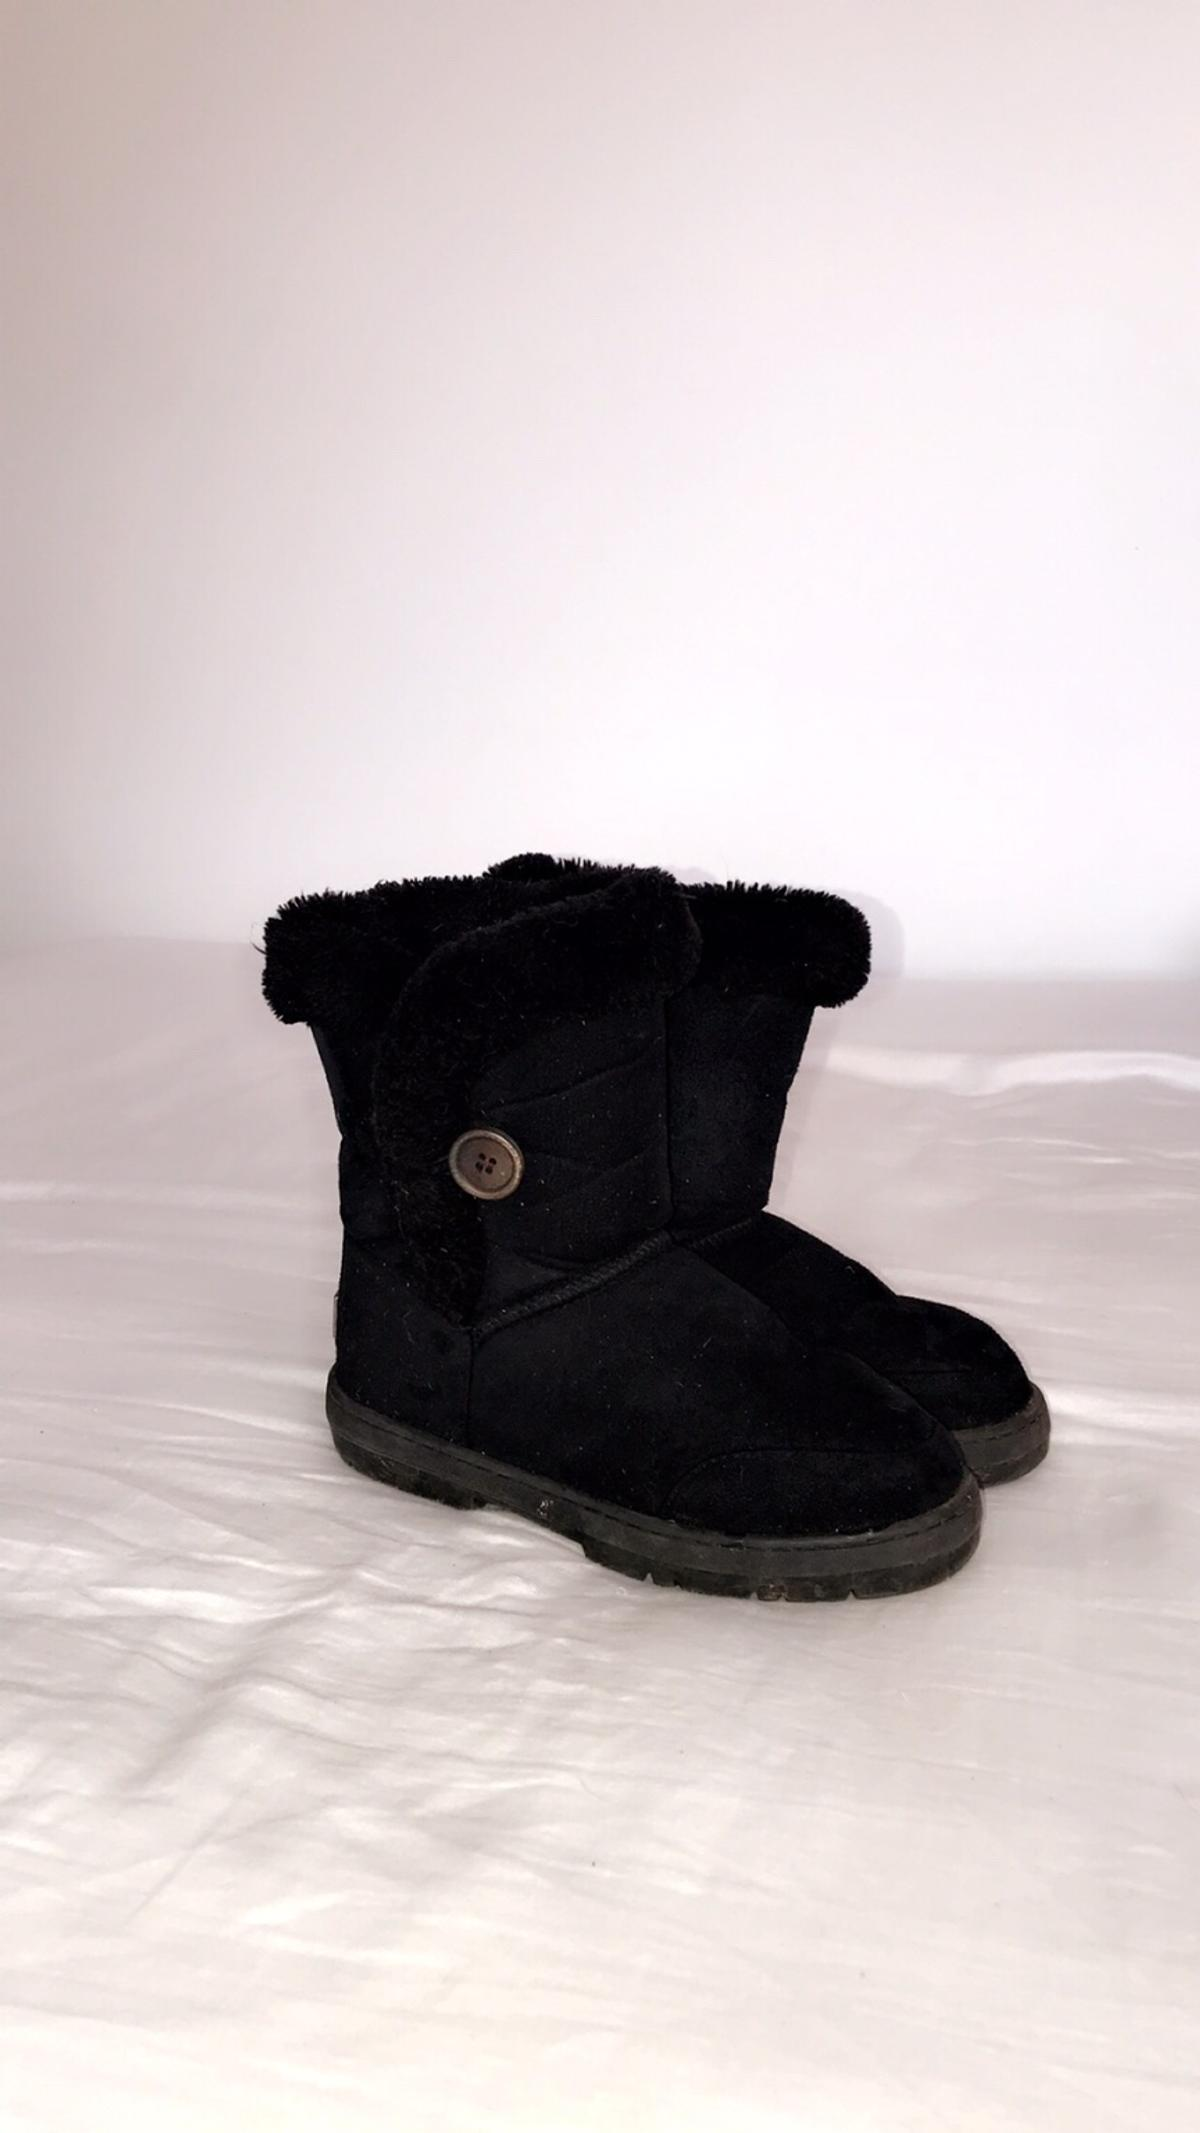 Gorgeous pair of black ugg boots in size 3 ( for women ) Worn a handful of times but still in amazing condition! Can't remember where I purchased from